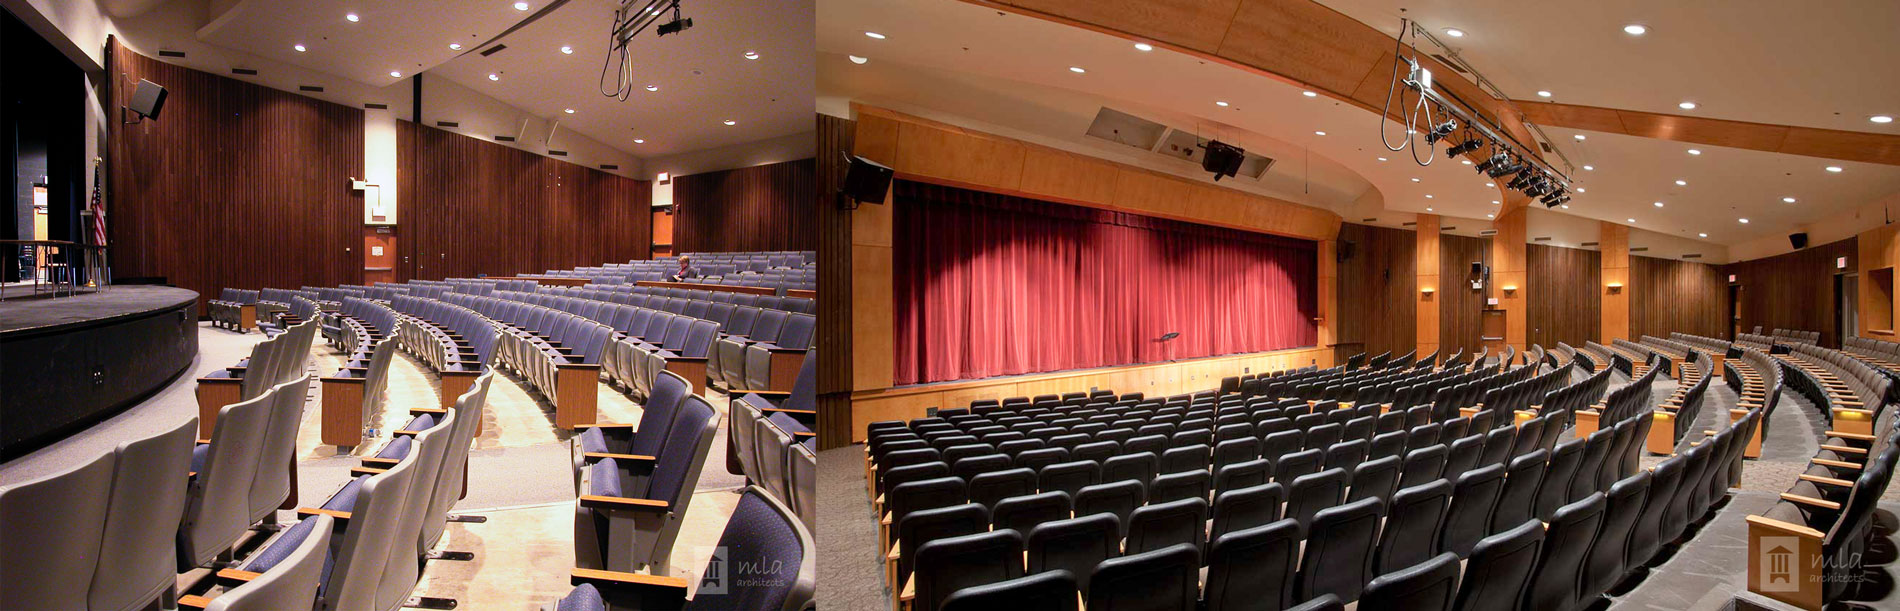 before-after-White-Bear-Lake-North-High-School-Theater.jpg